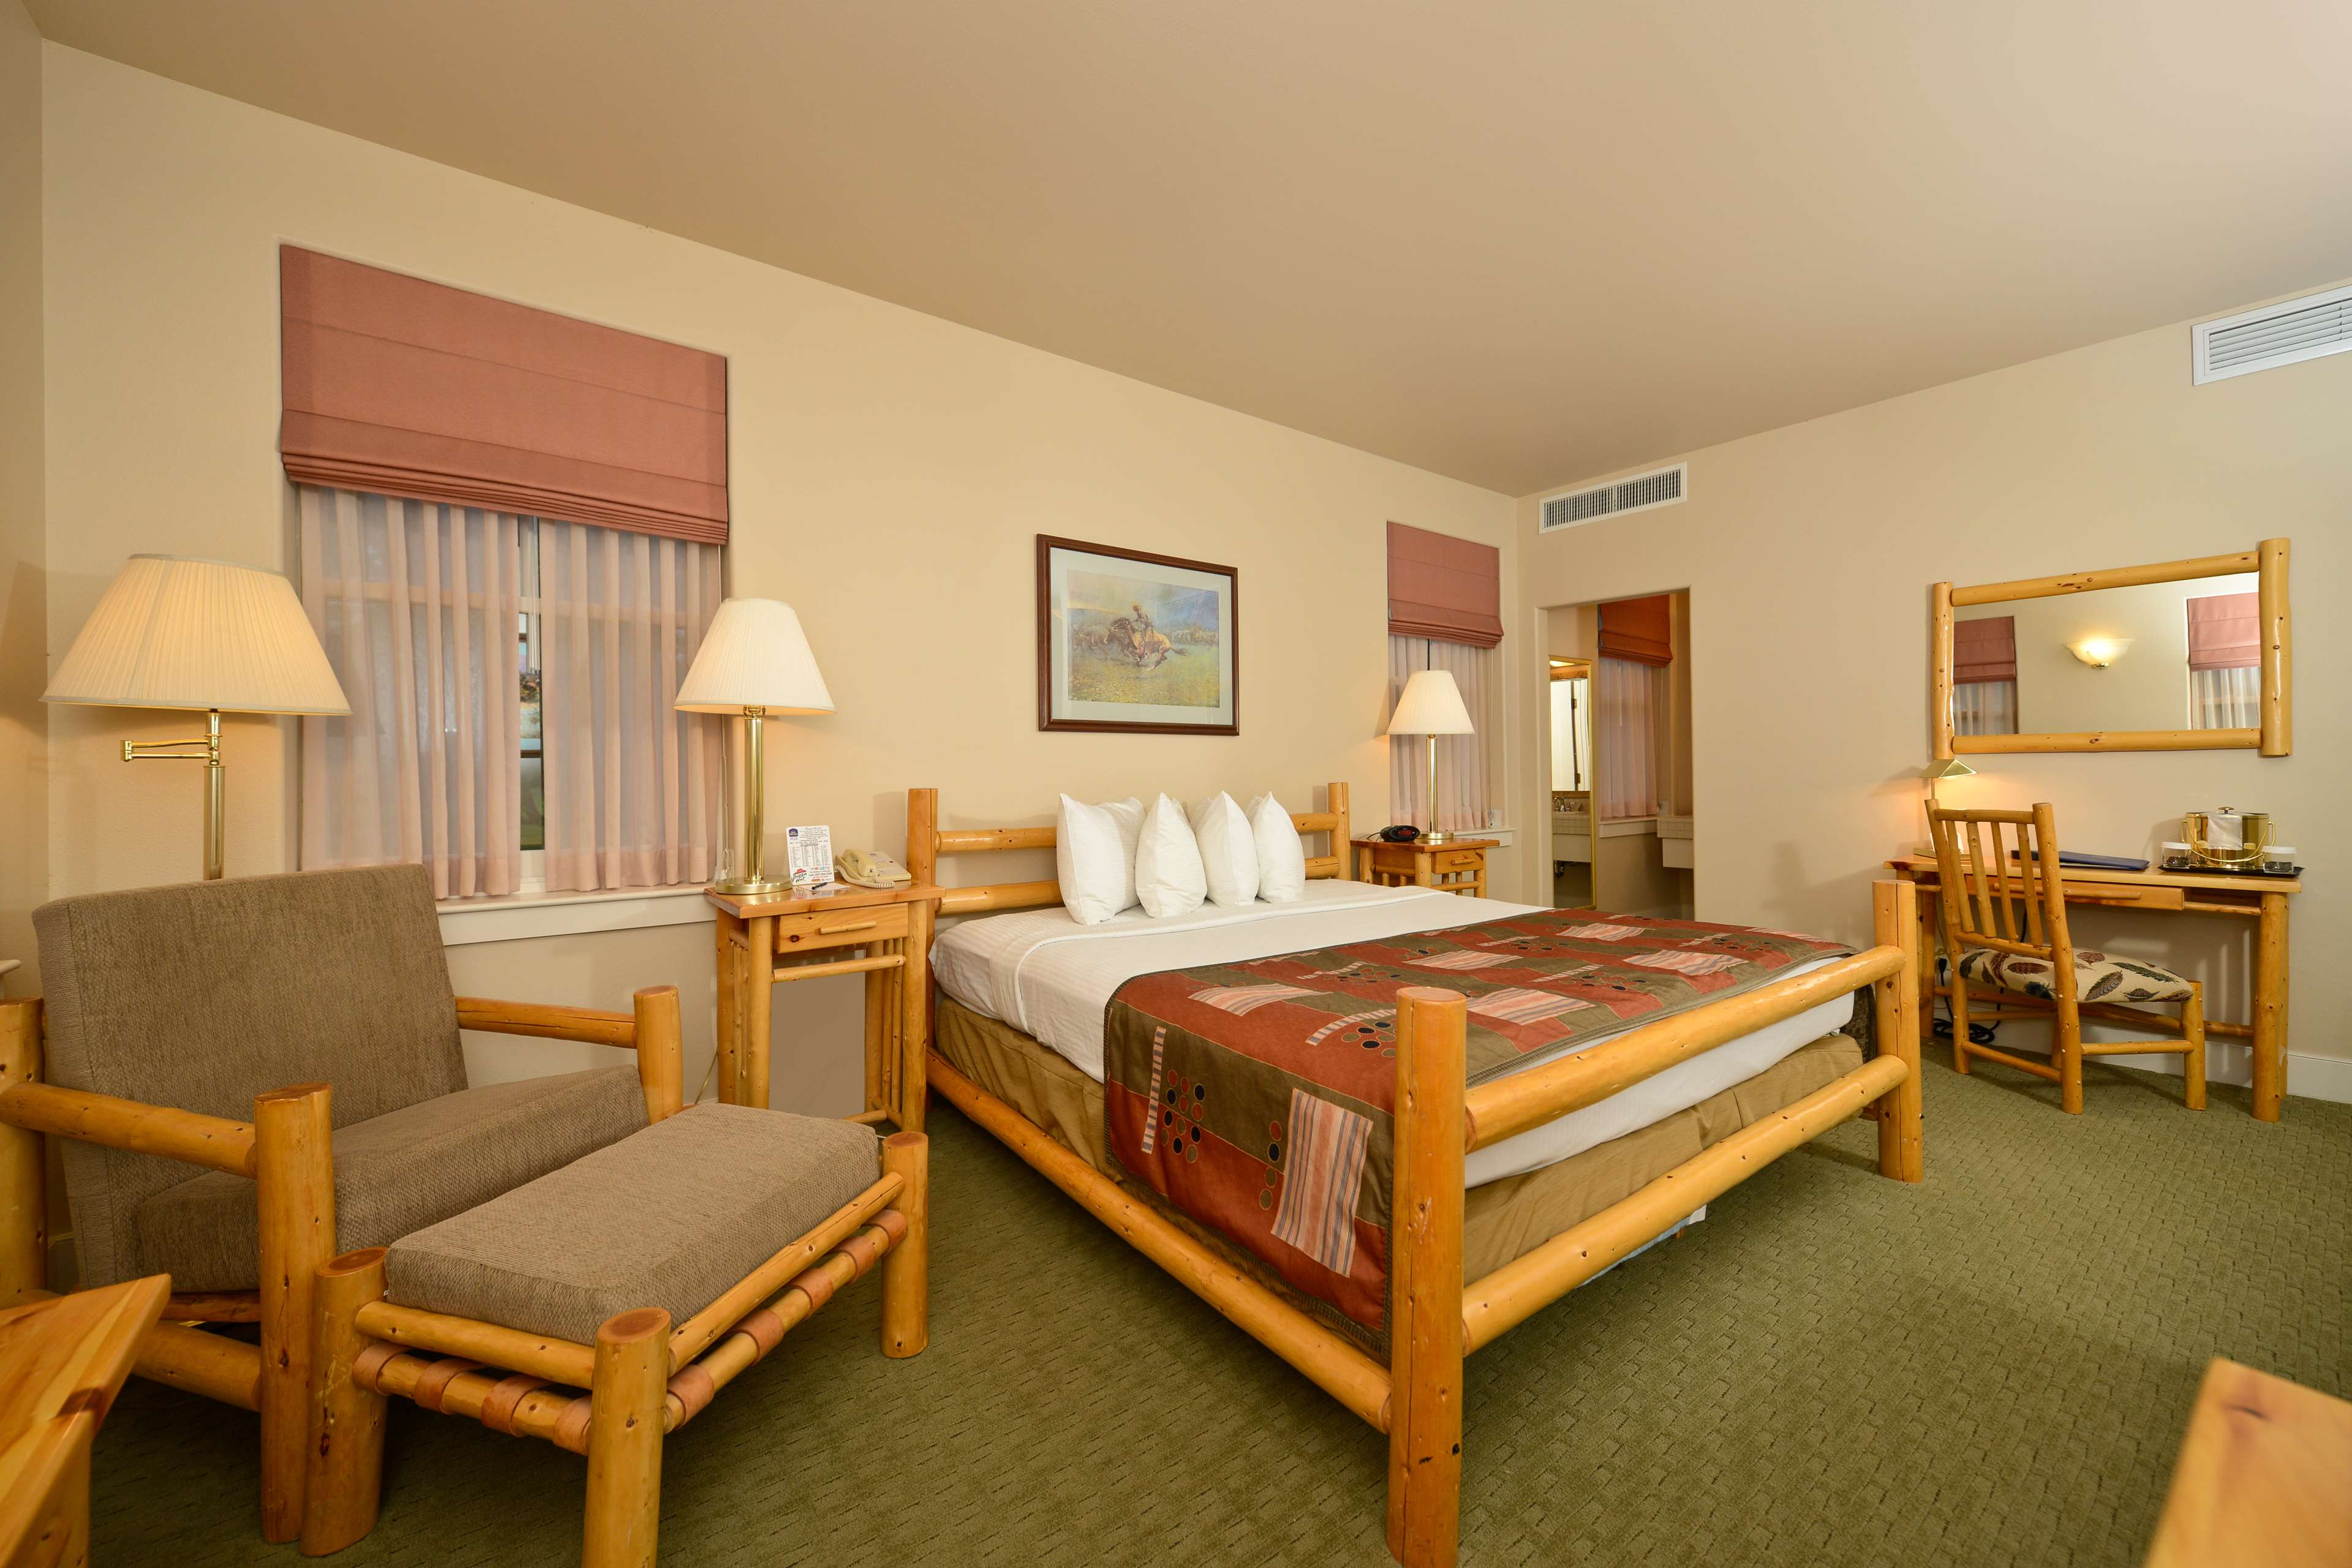 Best Western Plus Plaza Hotel image 34